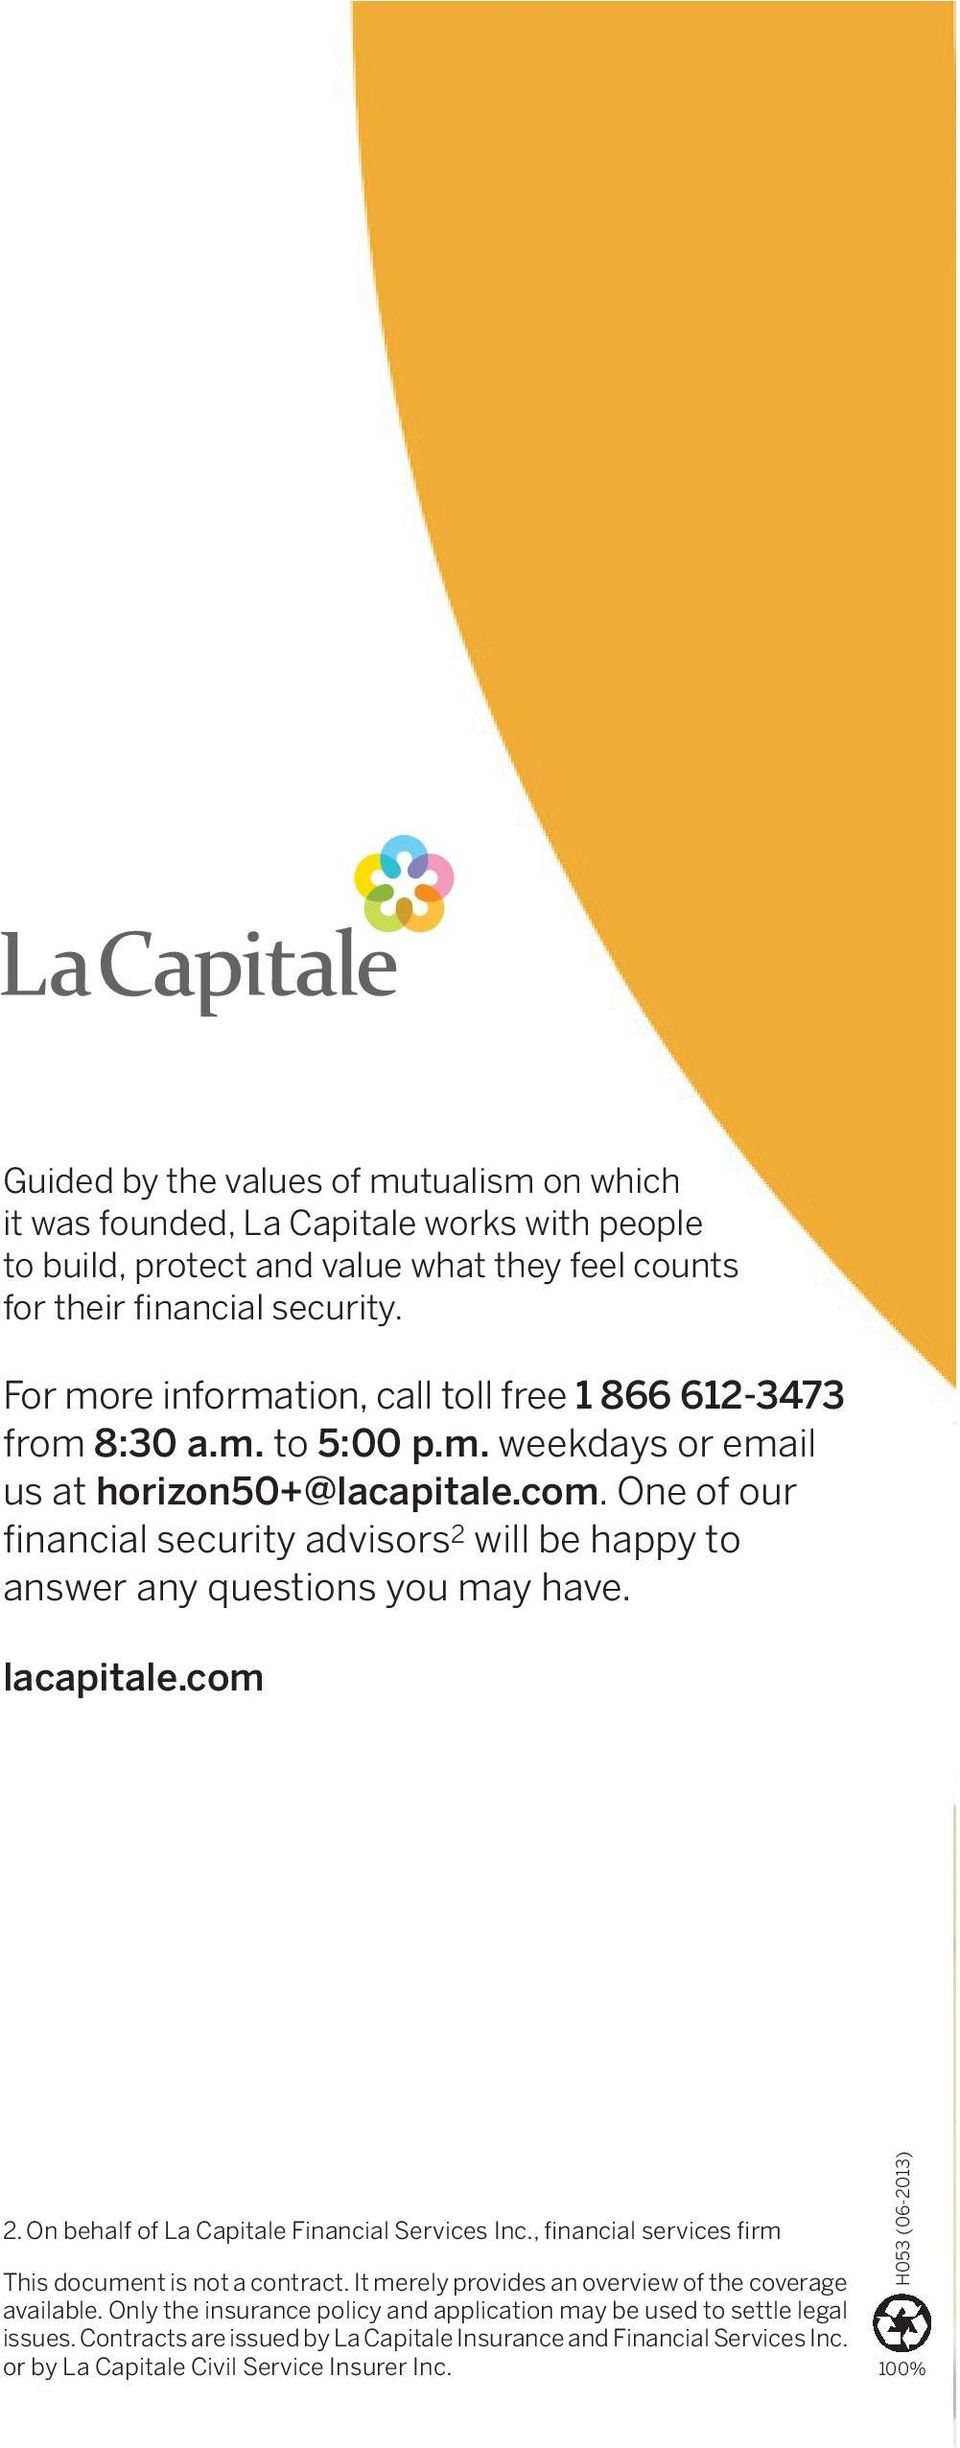 One of our financial security advisors 2 will be happy to answer any questions you may have. lacapitale.com 2. On behalf of La Capitale Financial Services Inc.